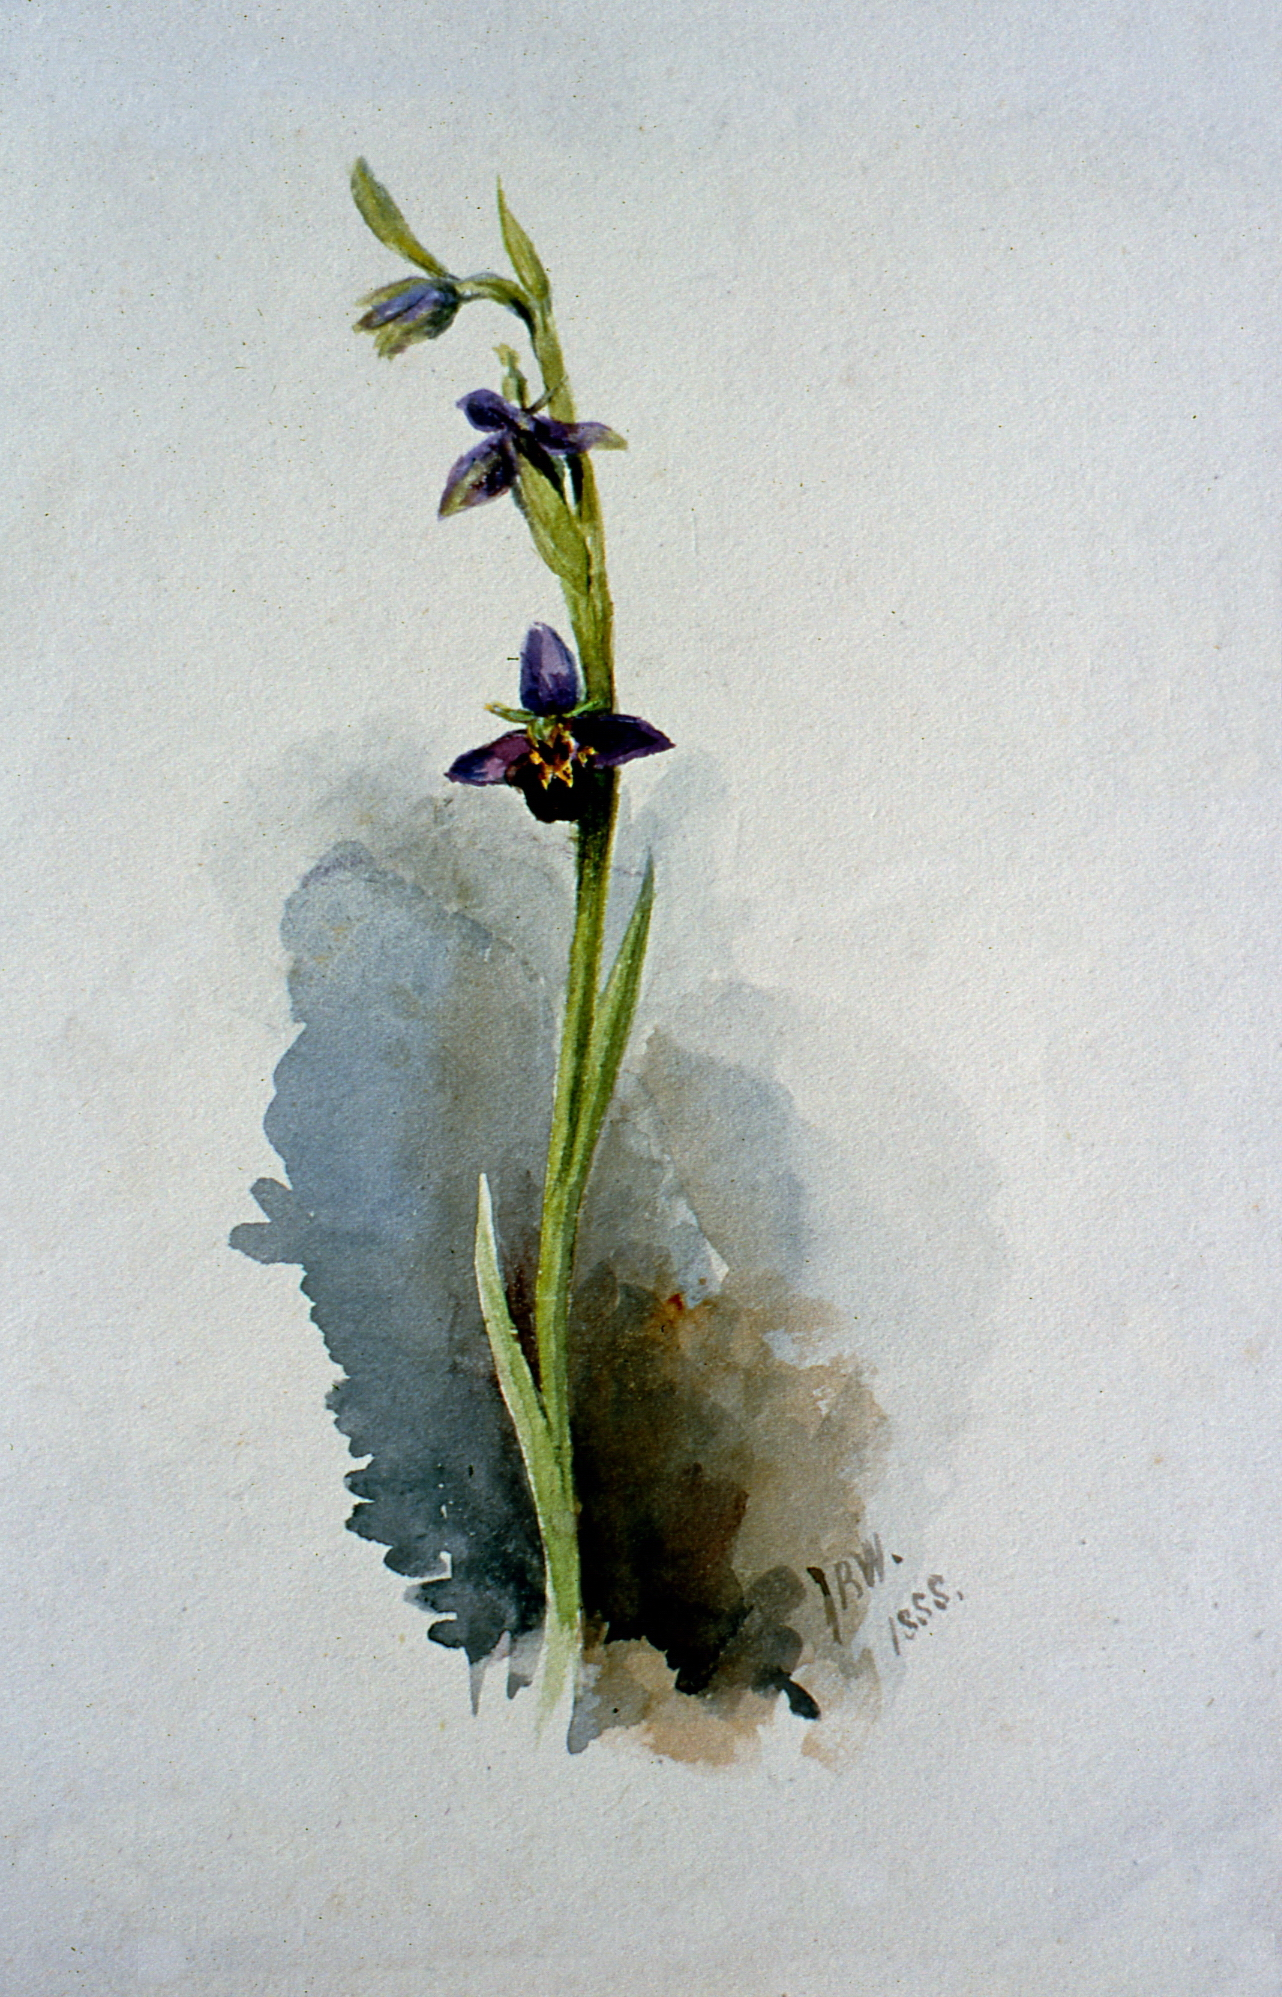 Untitled , 1888, Julia Bullock Webster, watercolour on paper, 22 cm x 13.7 cm, 2003.02.05, gift of The Grist Mill at Keremeos